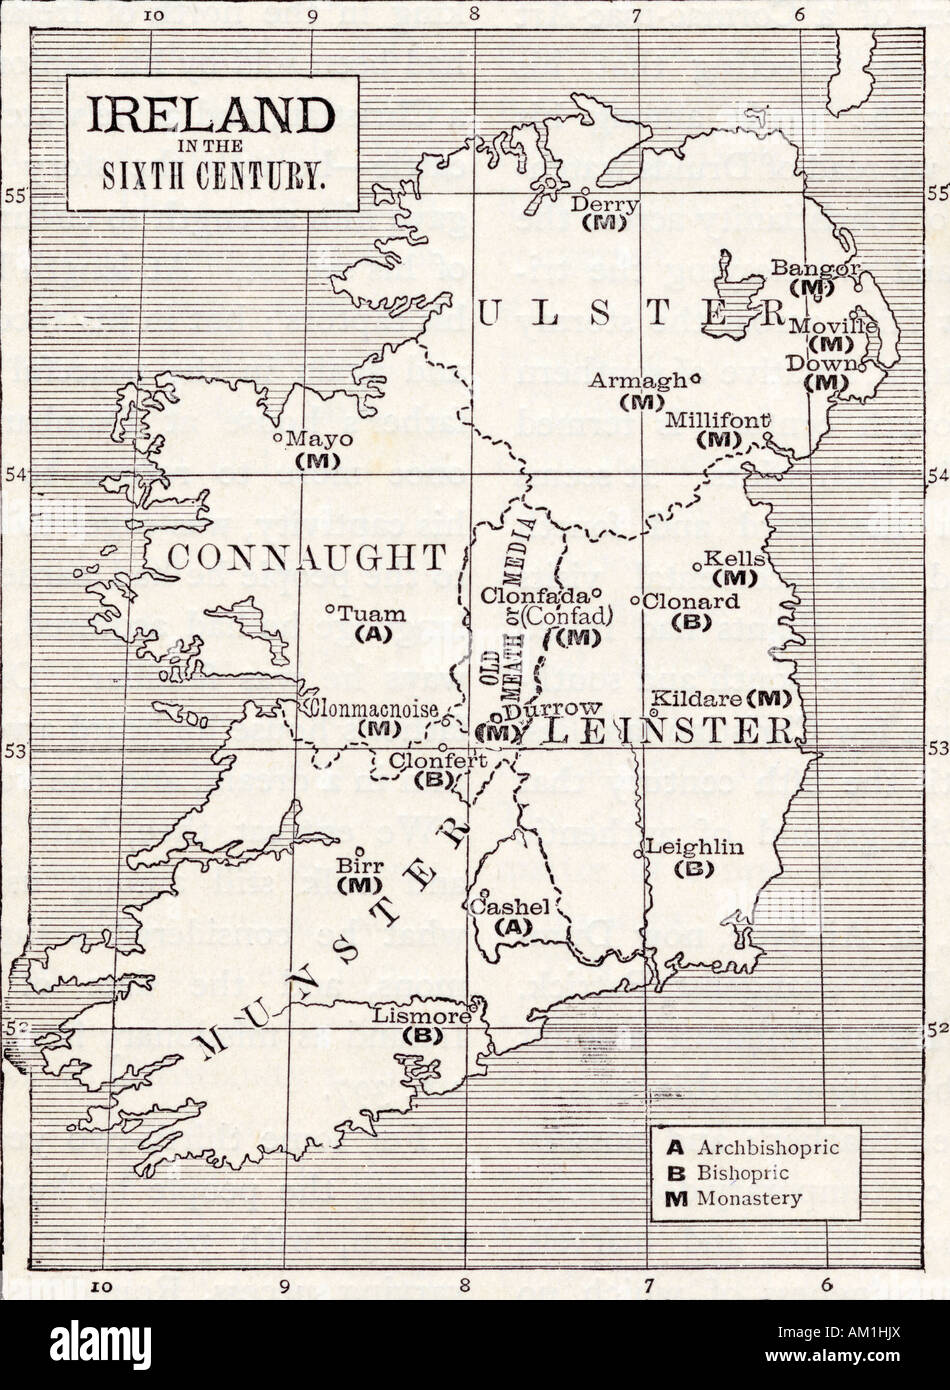 Map Of England 6th Century.Map Of Ireland In The Sixth Century From The Book The Church Of